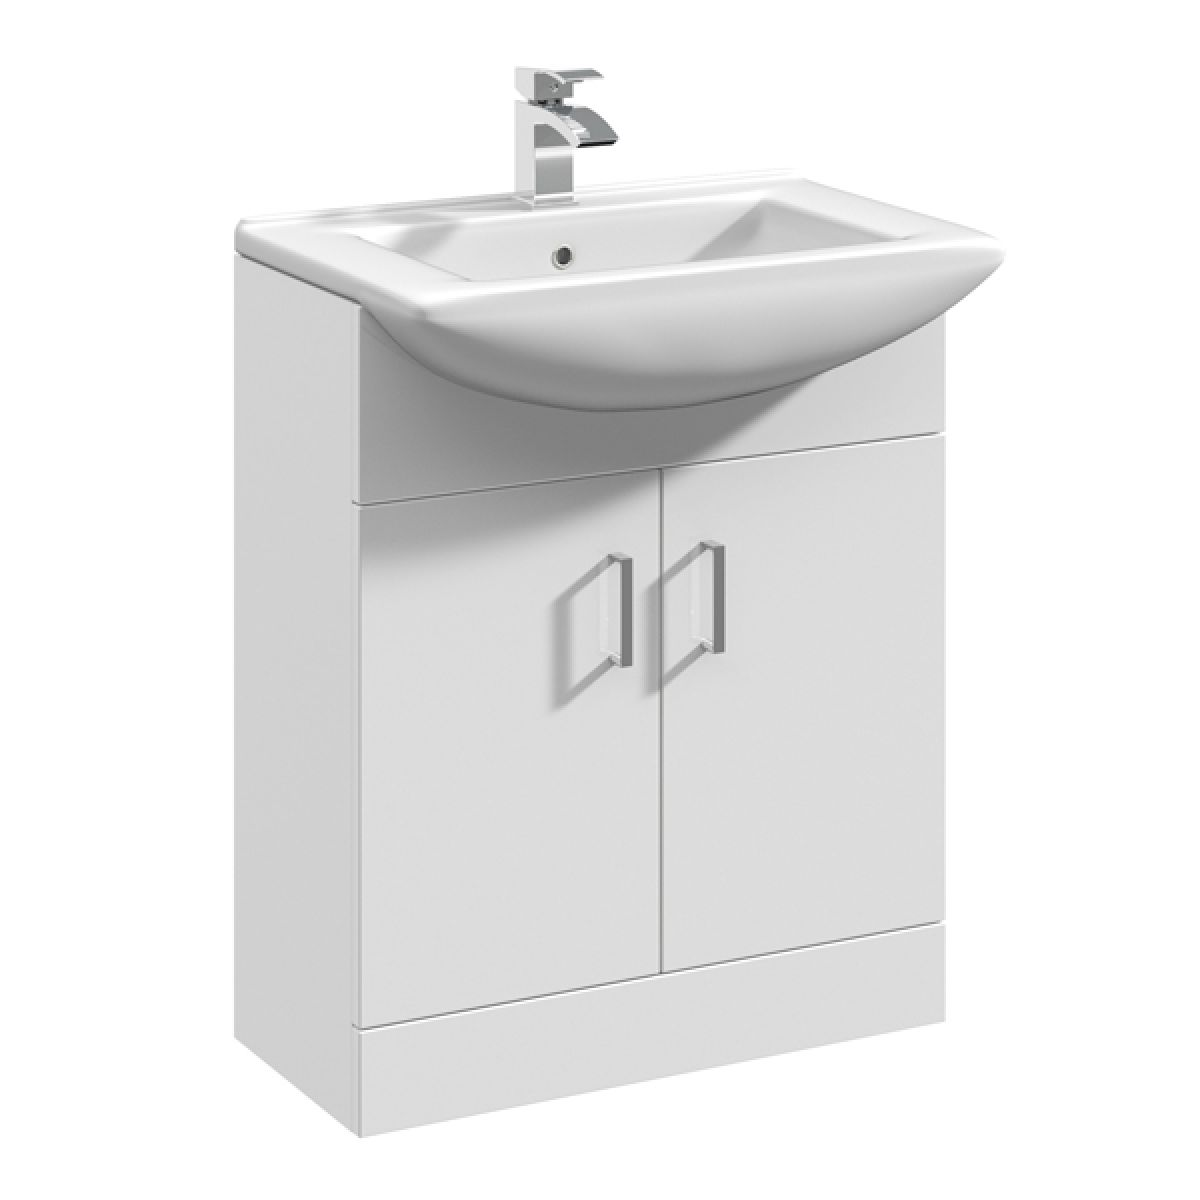 Premier High Gloss White Vanity Unit with Deluxe Basin 650mm